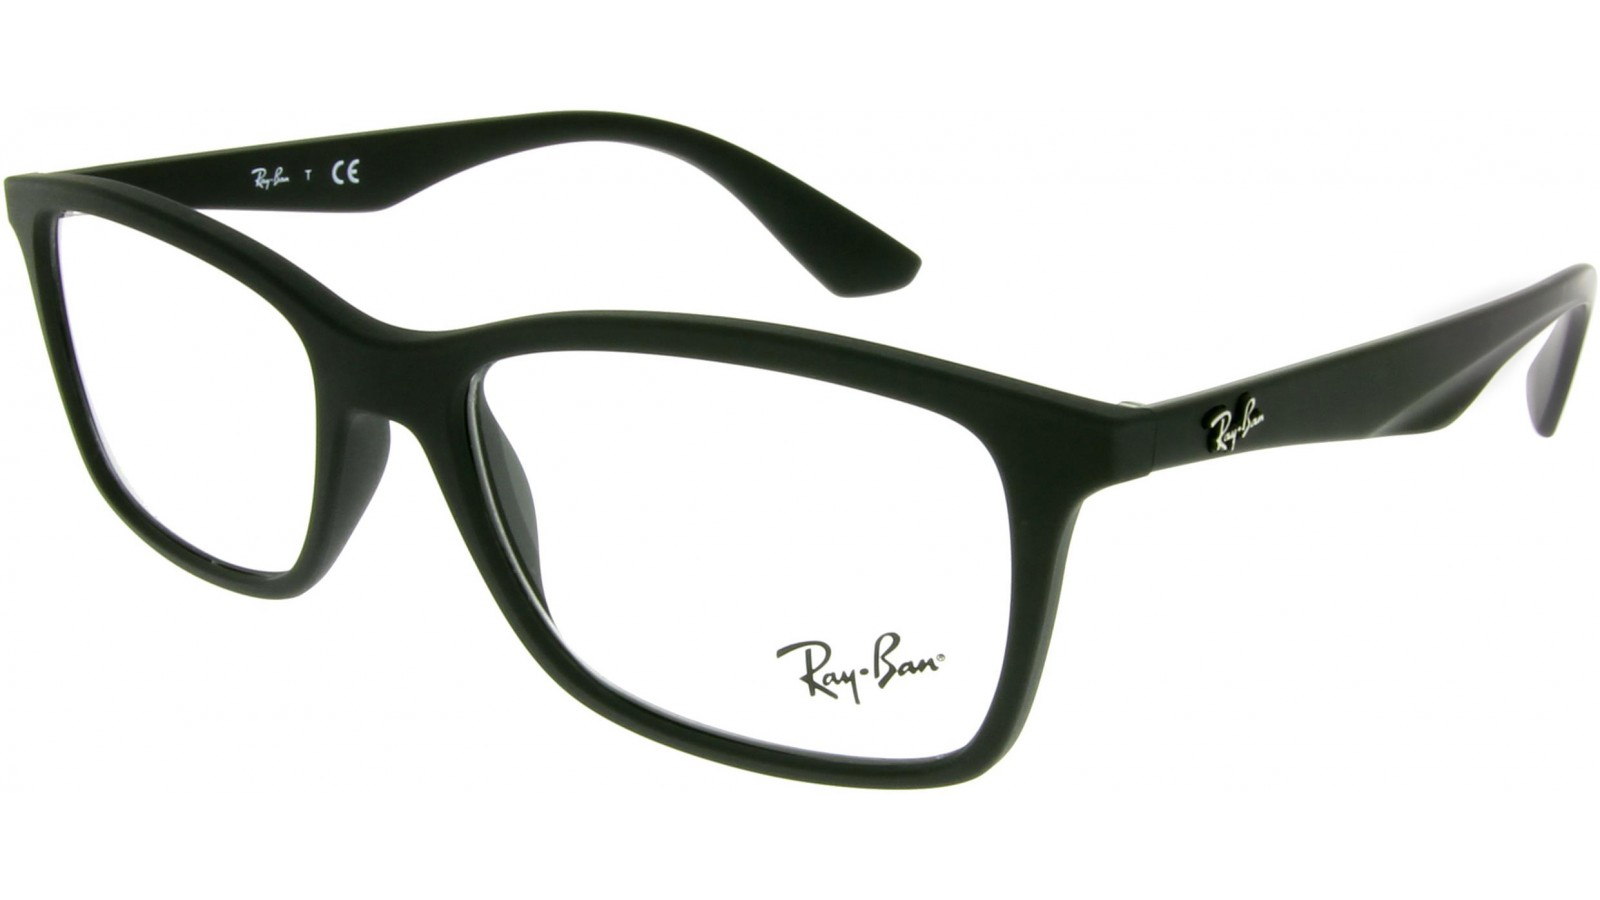 Ray Ban Brille RX 7047 5196 54/140 VBJlG2H